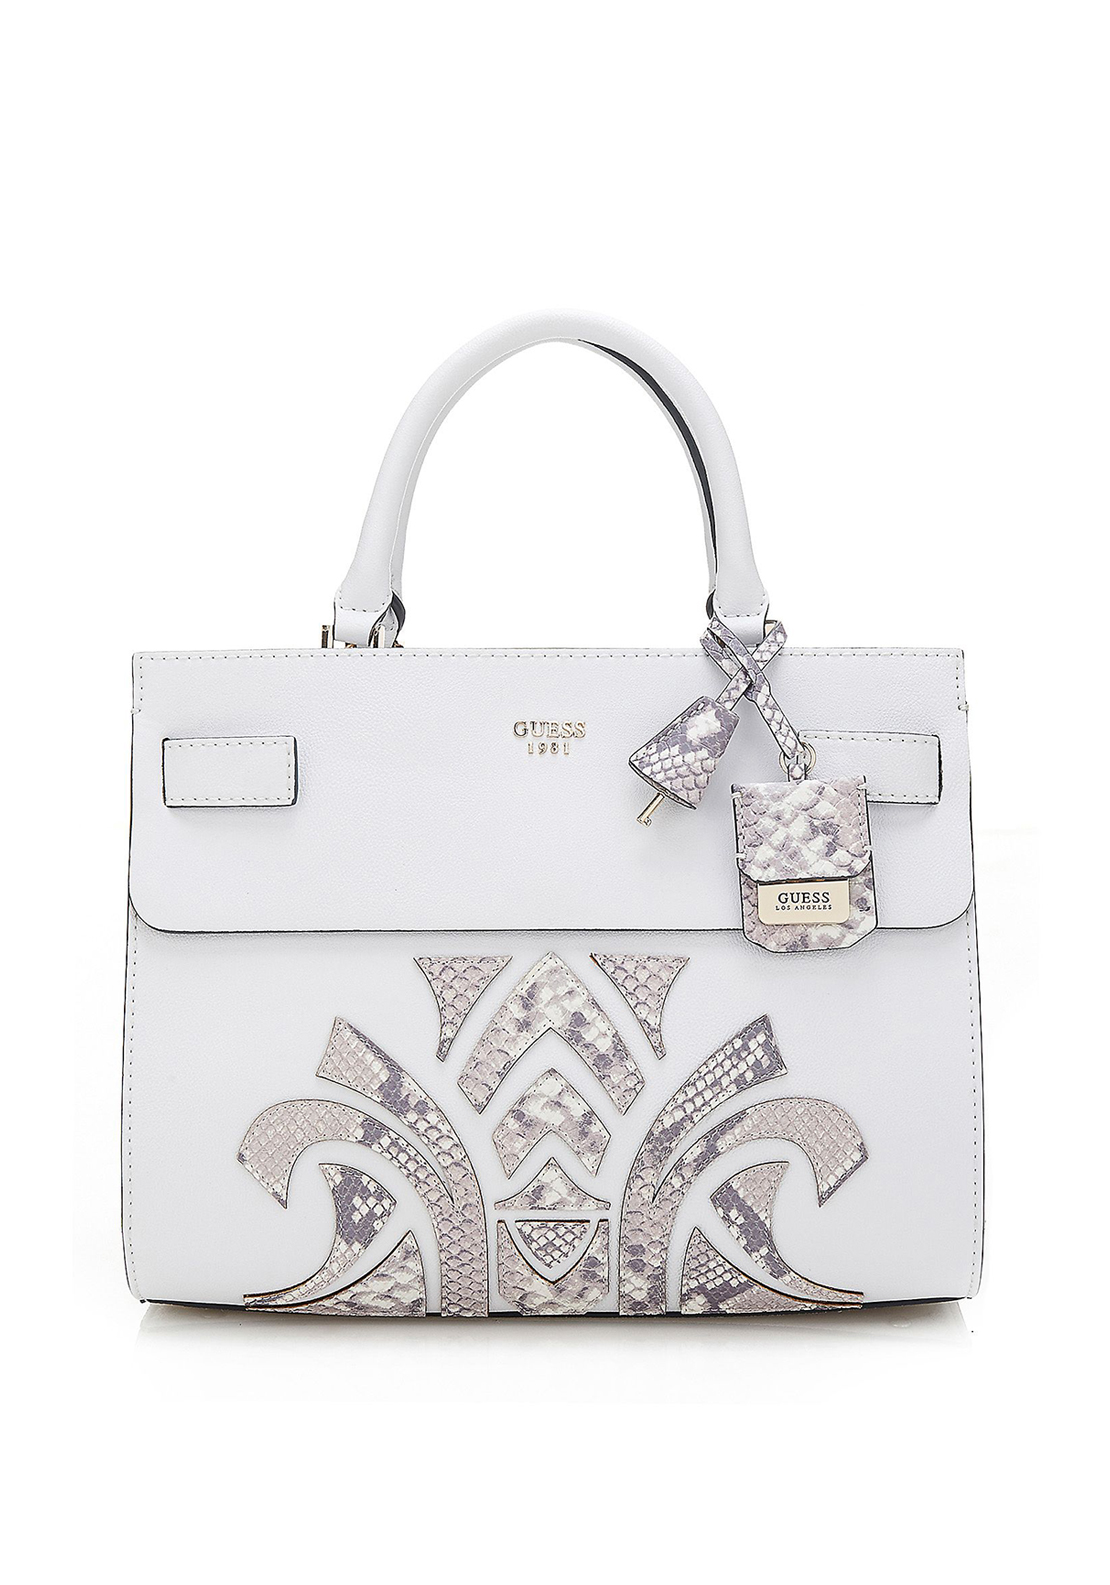 Guess Cate Bag, White & Python Print